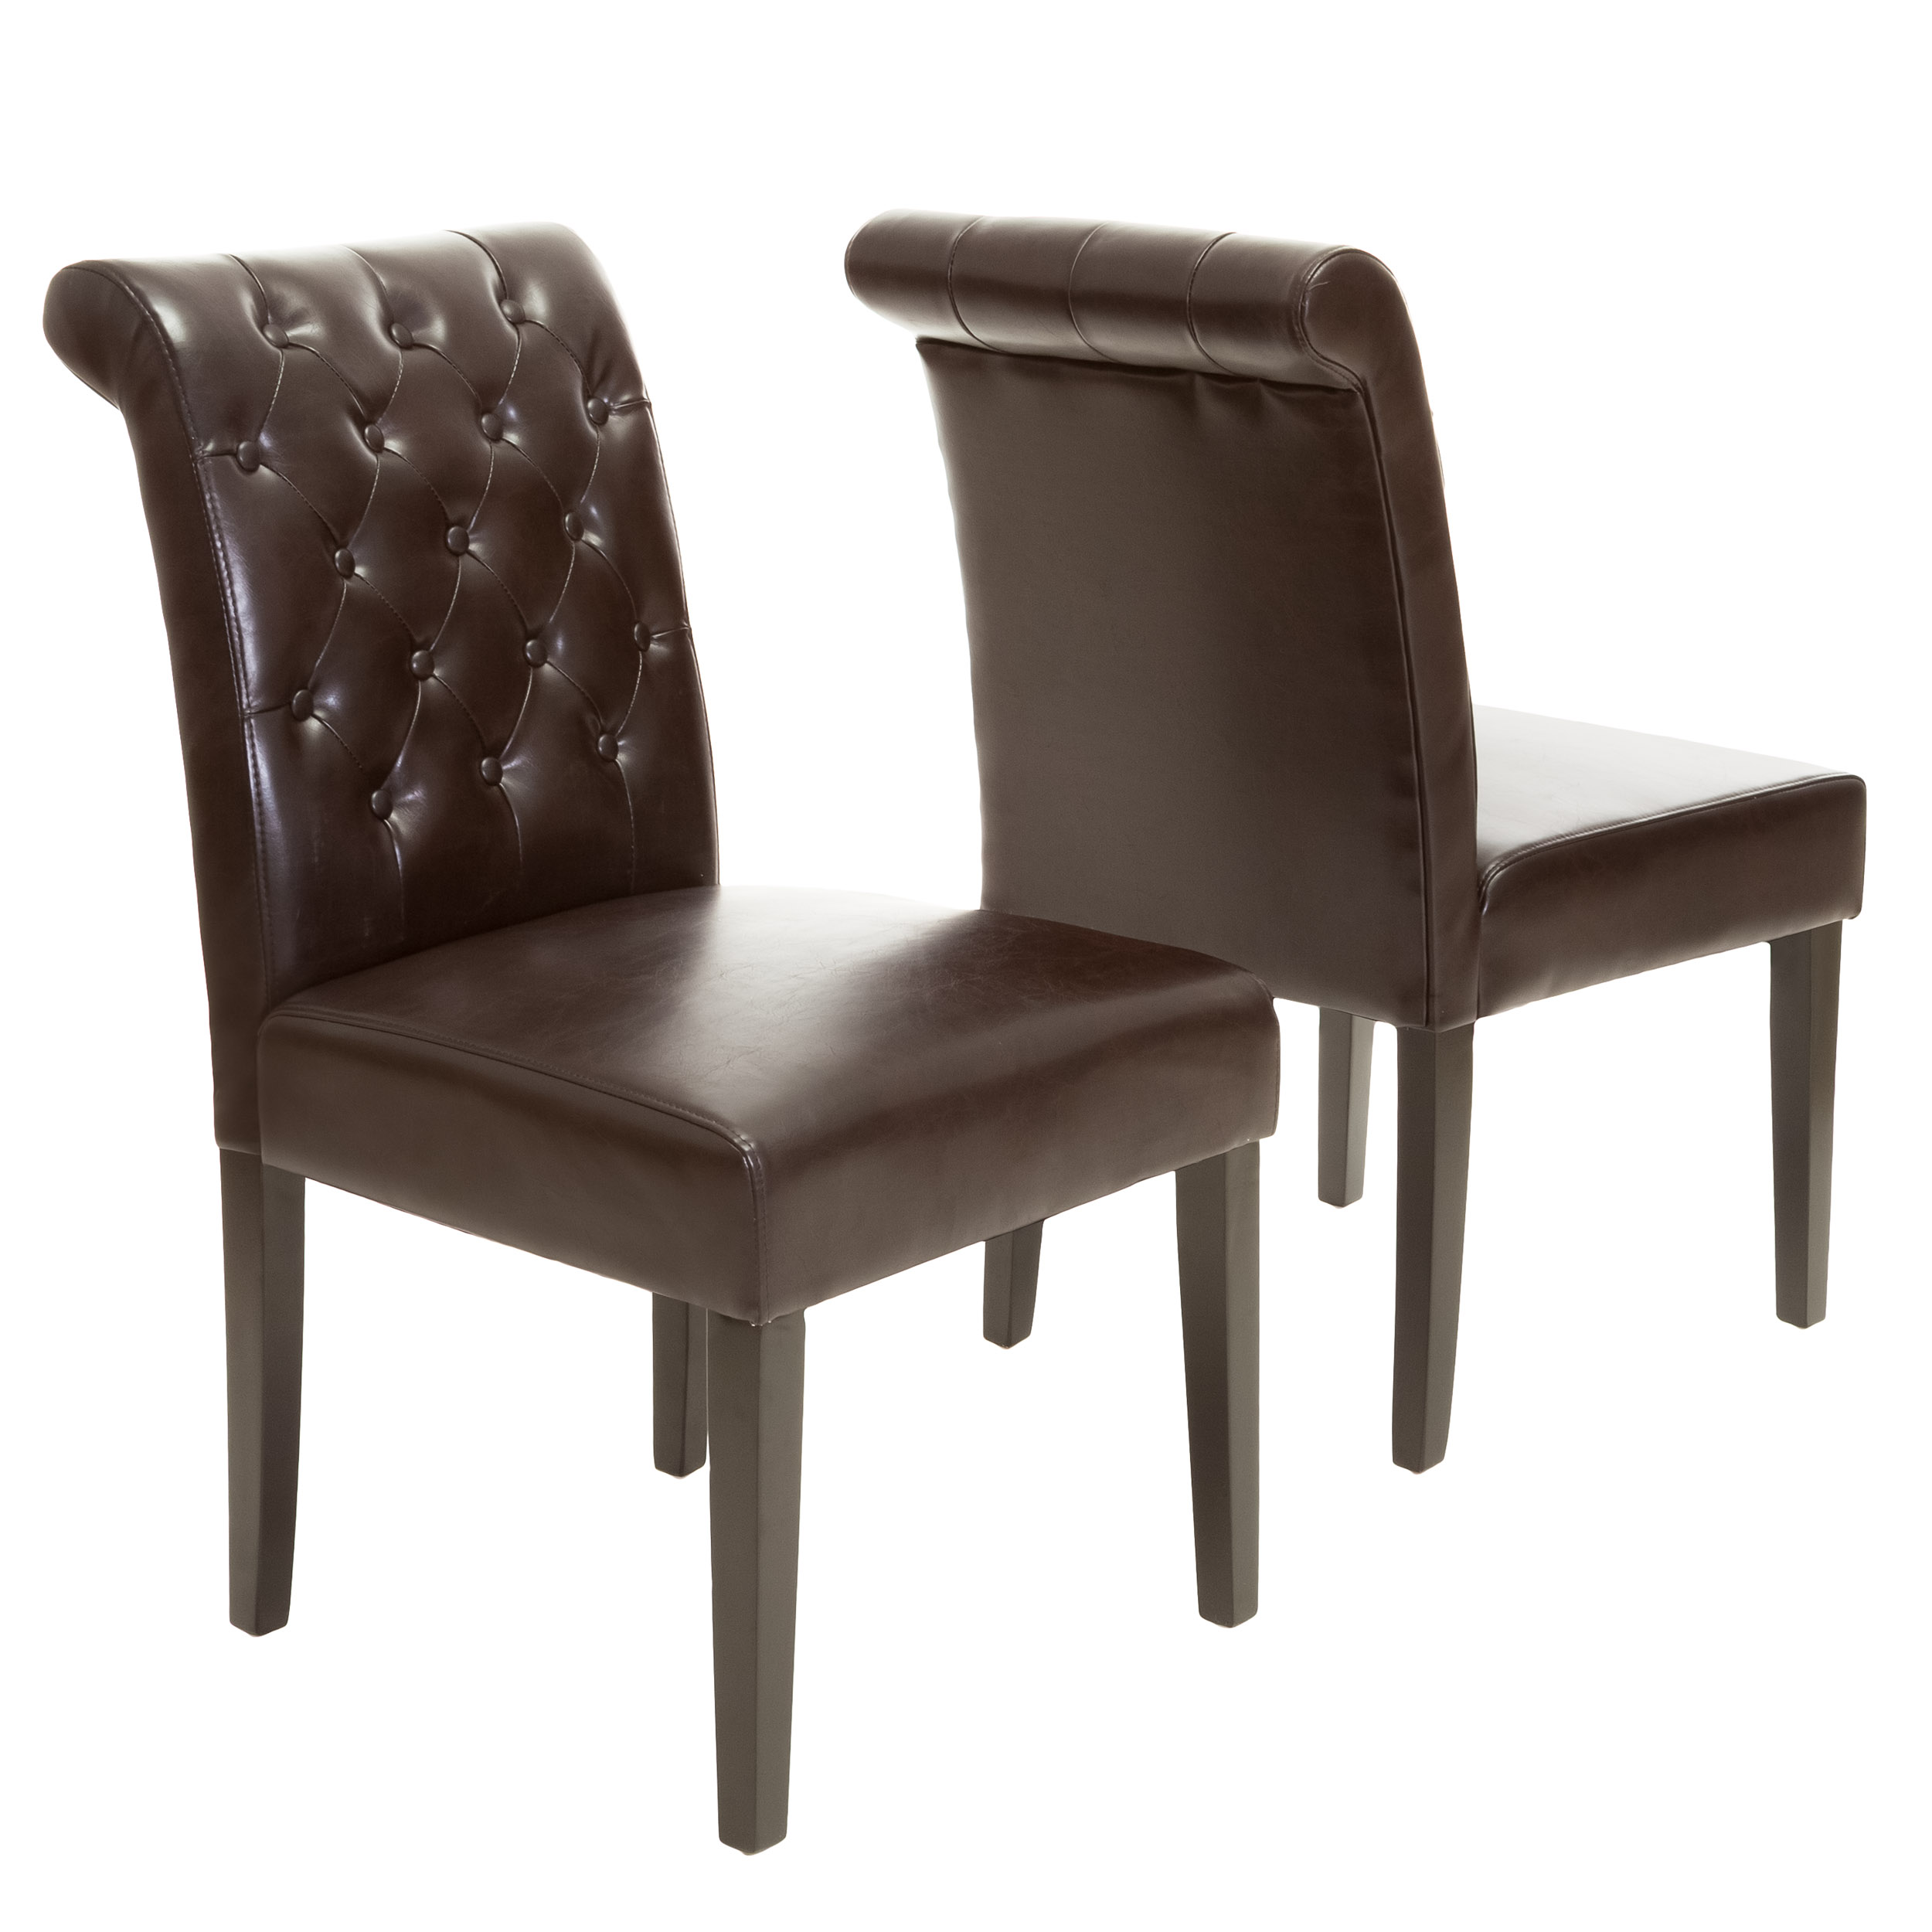 leather tufted dining chair cast iron patio chairs mario bonded set of 2 walmart com